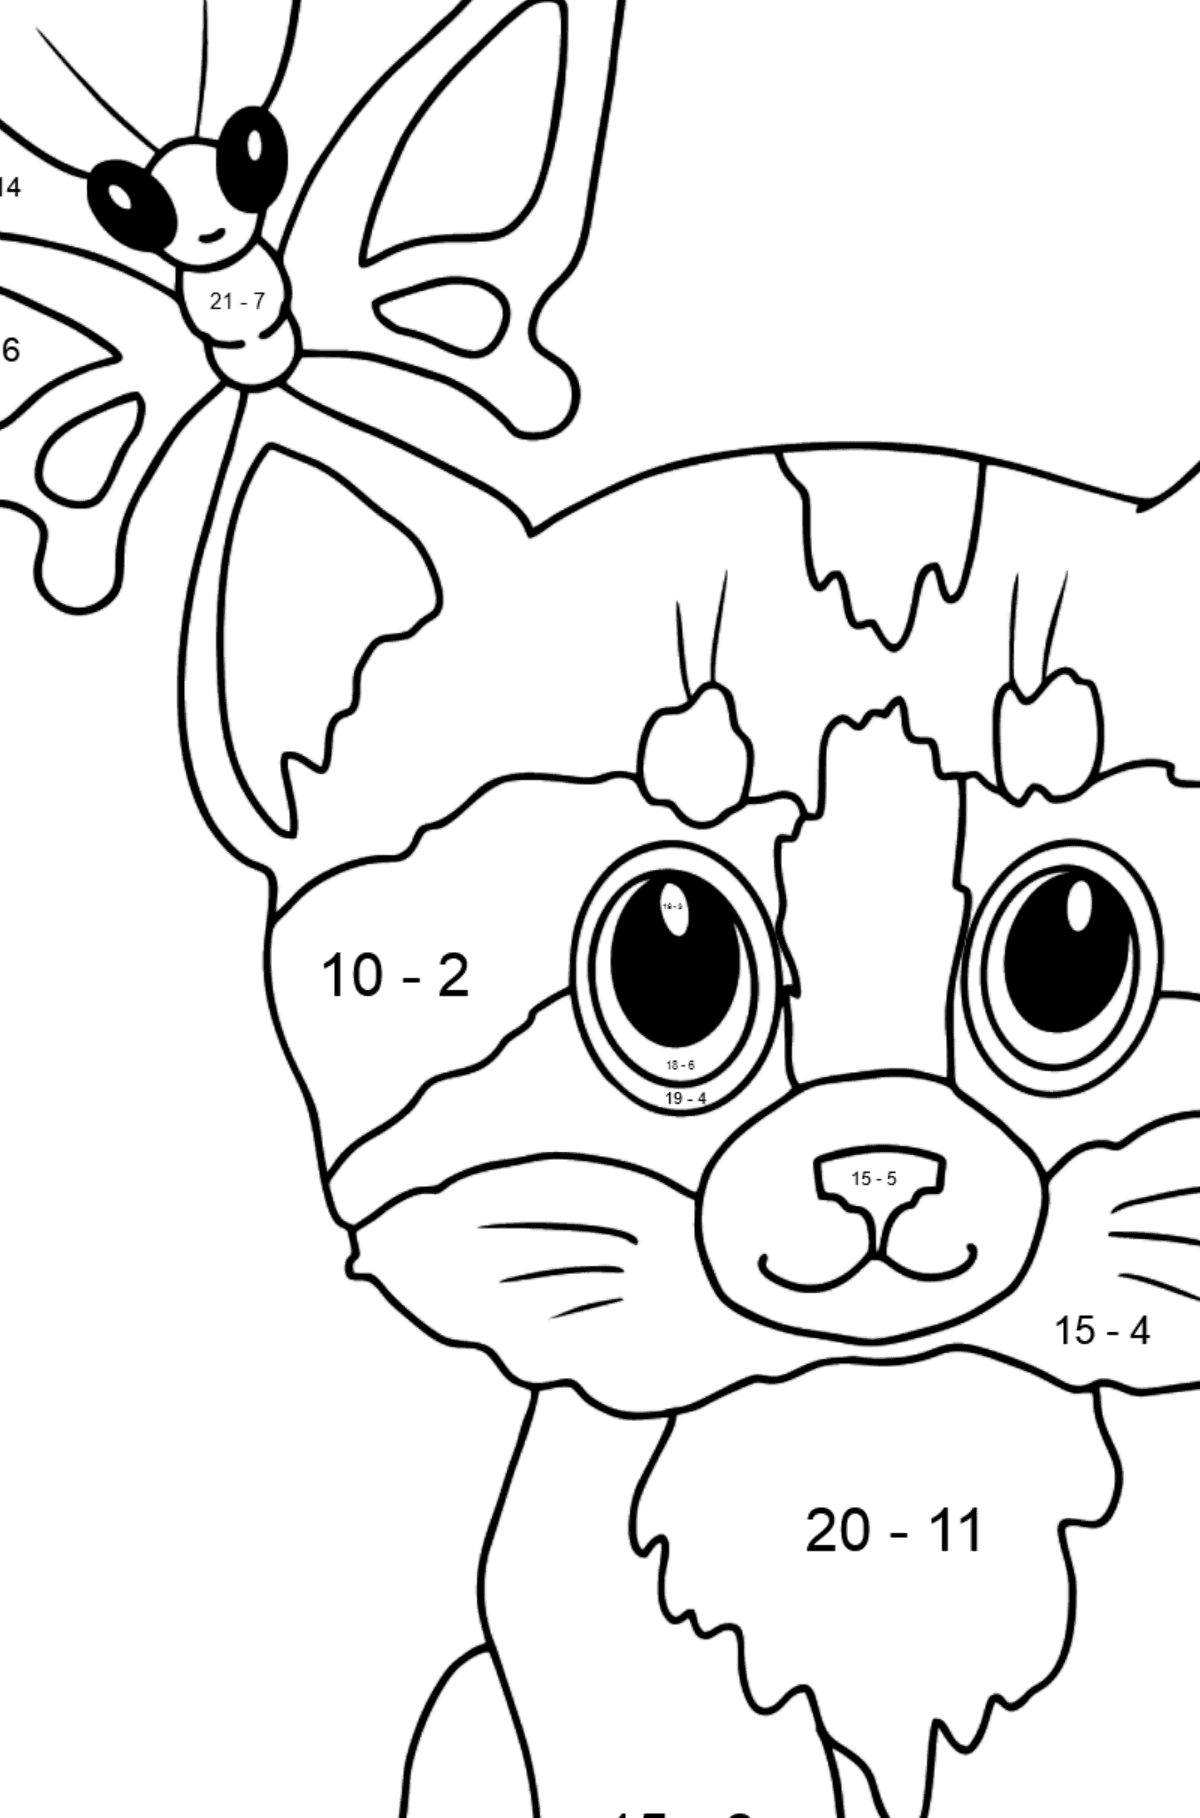 Coloring Page - A Kitten has Caught a Butterfly - Math Coloring - Subtraction for Kids